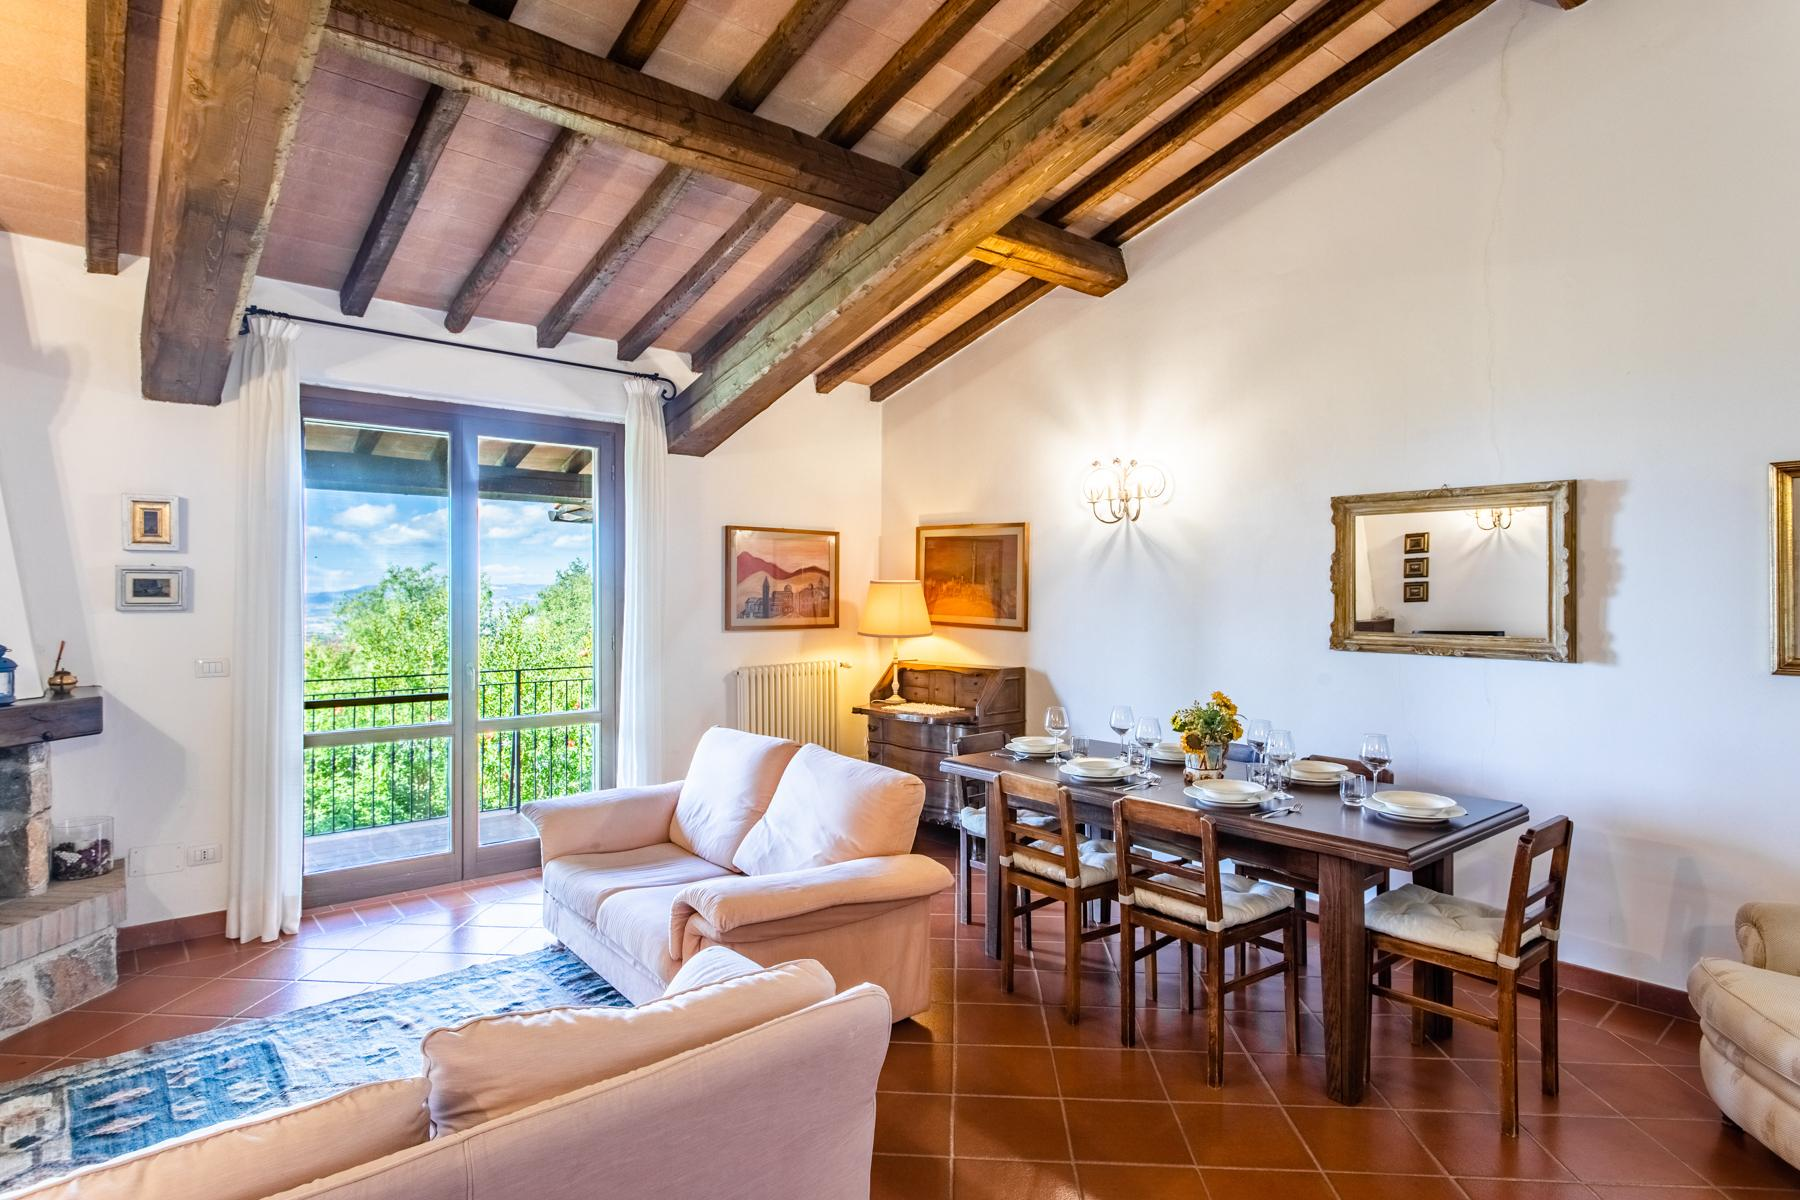 Charming farmhouse with swimming pool in the Maremma countryside - 11